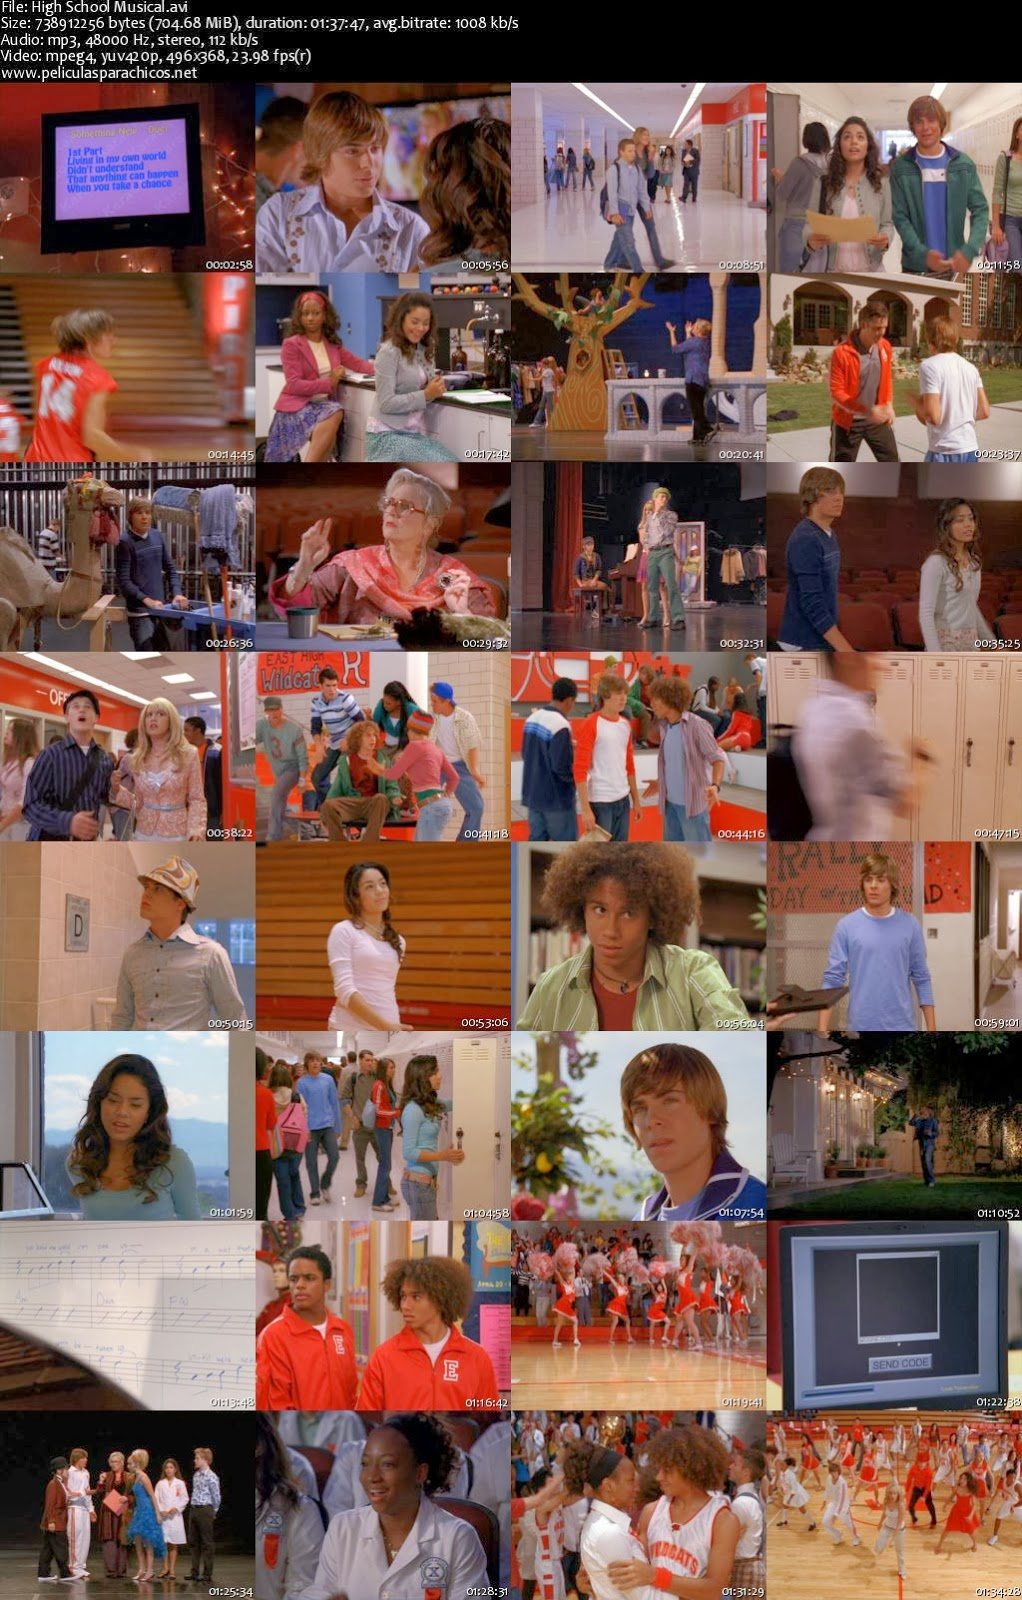 HIGH SCHOOL MUSICAL | Peliculas Infantiles